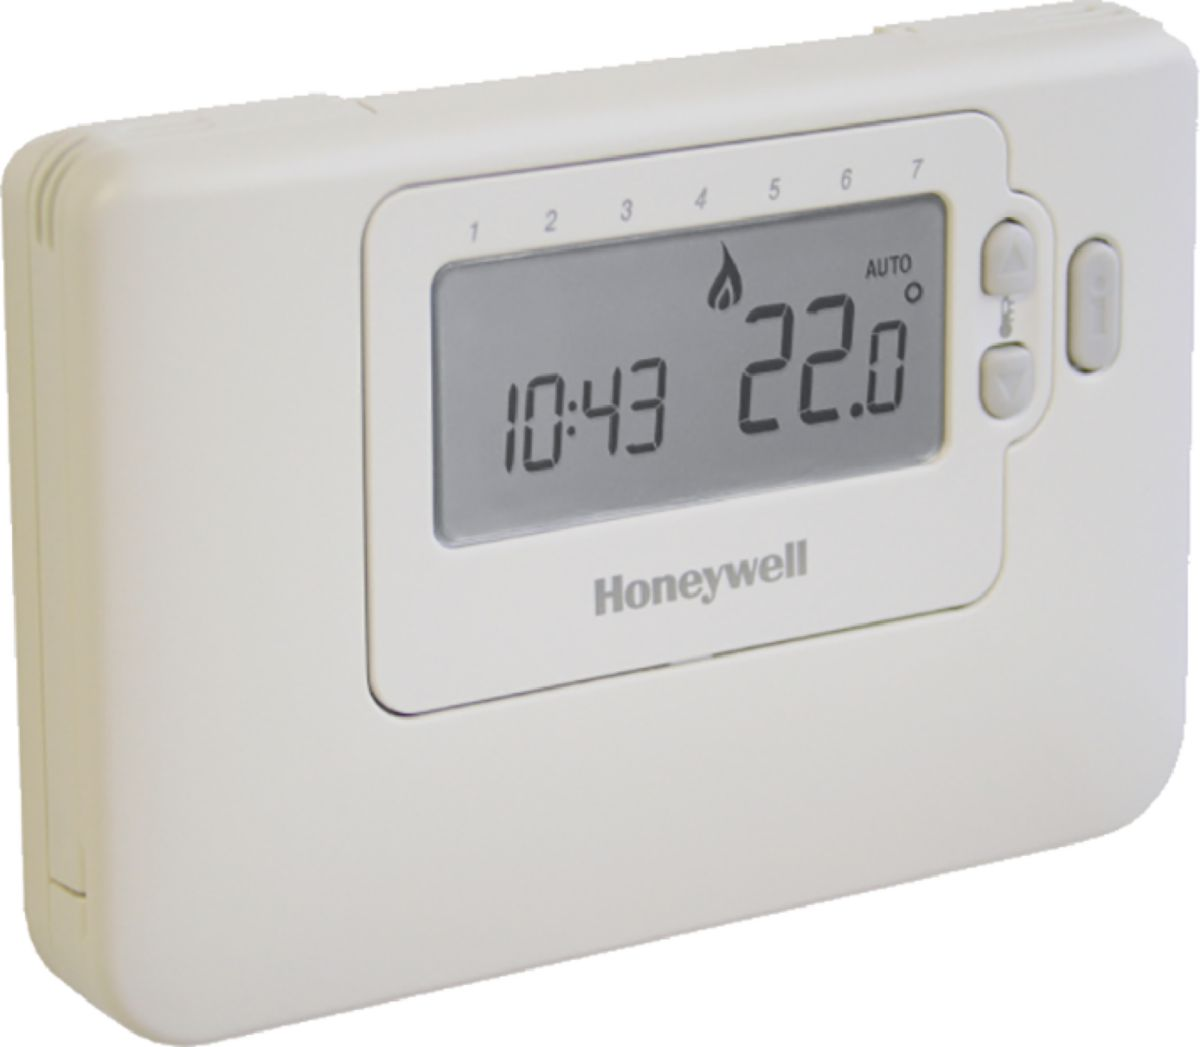 honeywell thermostat d 39 ambiance programmable hebdomadaire cm707 r f cmt707a1003 cedeo. Black Bedroom Furniture Sets. Home Design Ideas